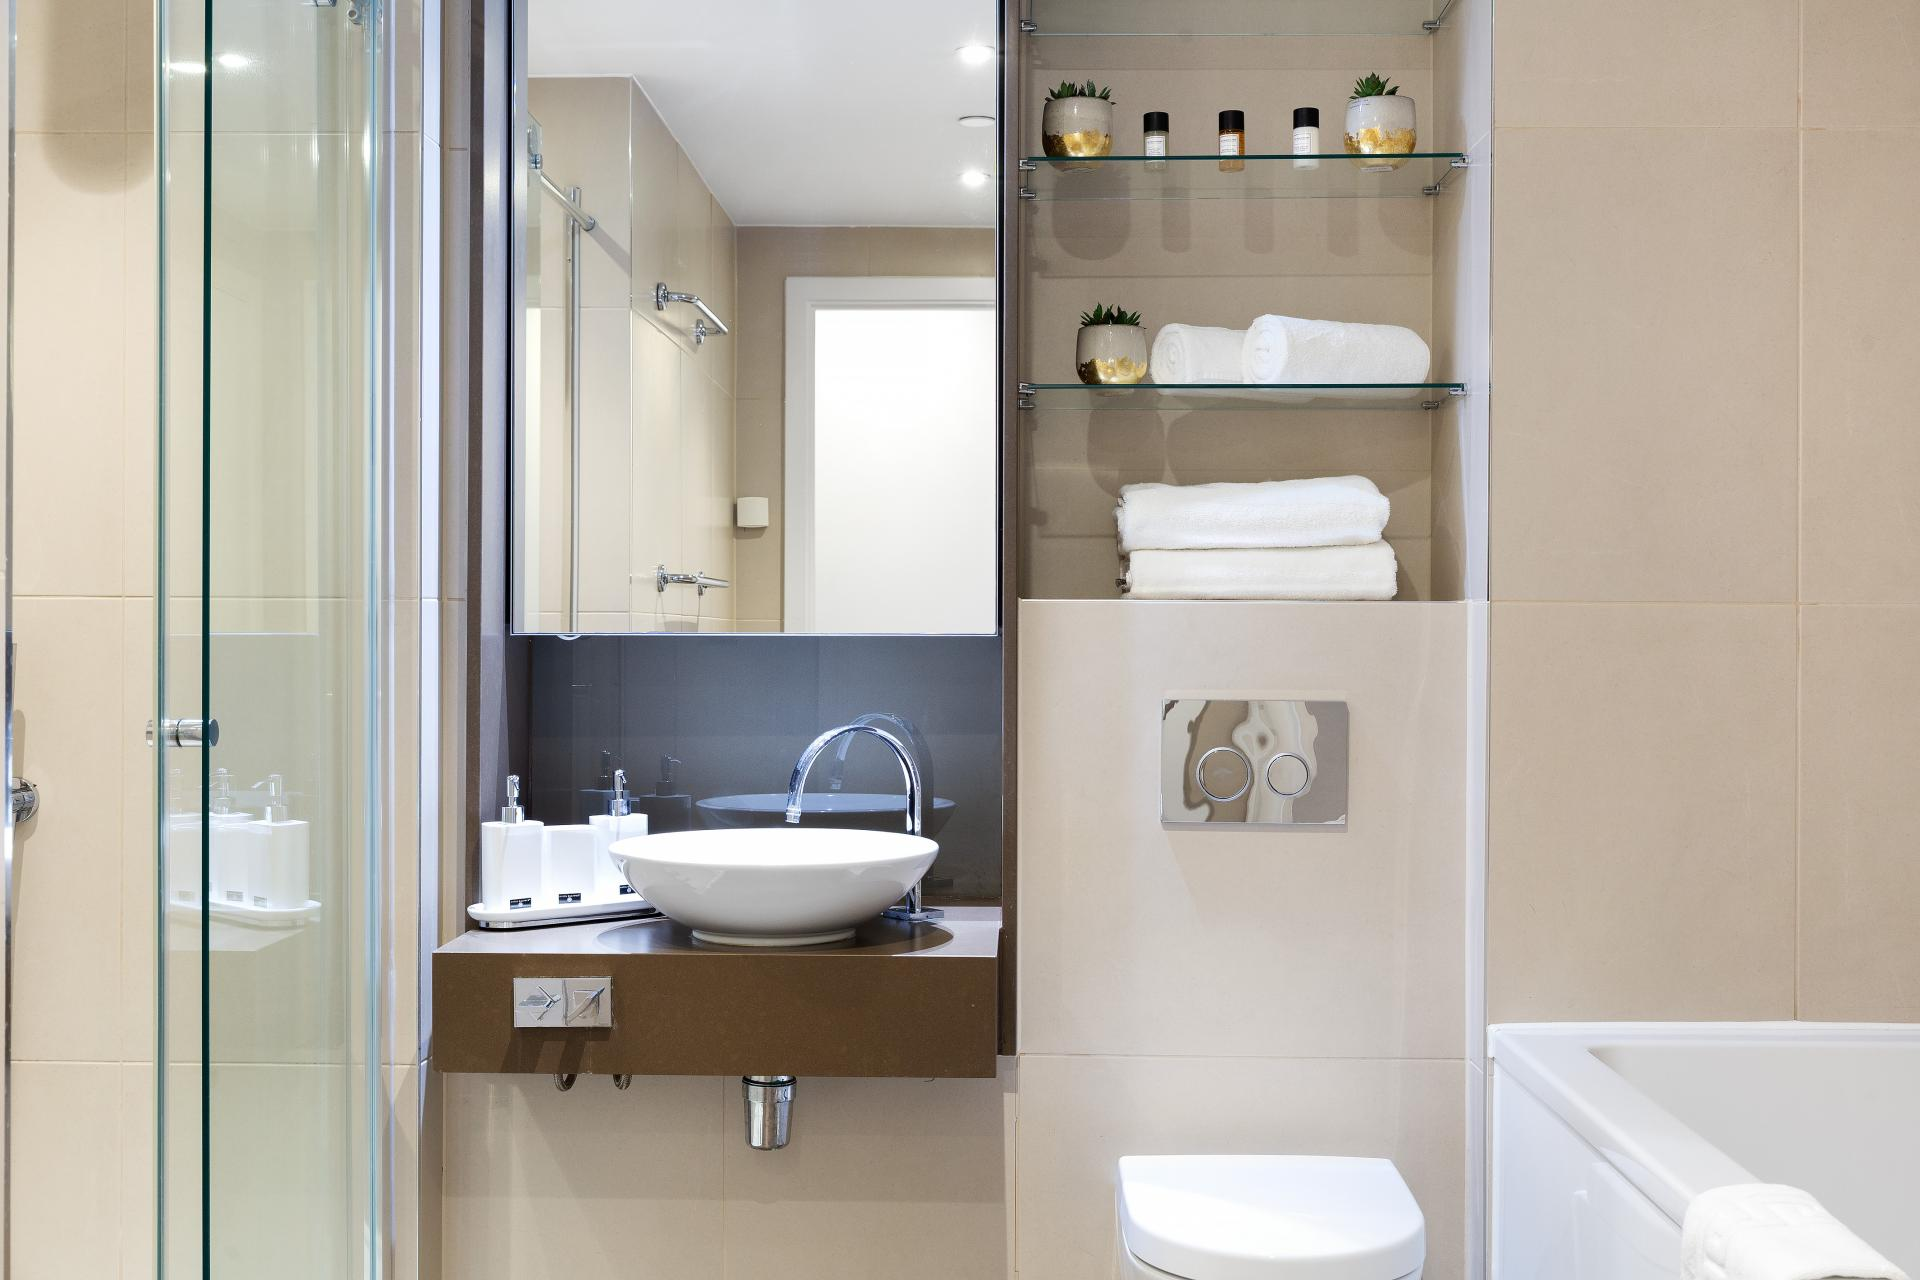 Bathroom mirror and storage at Lexicon Book House Apartments